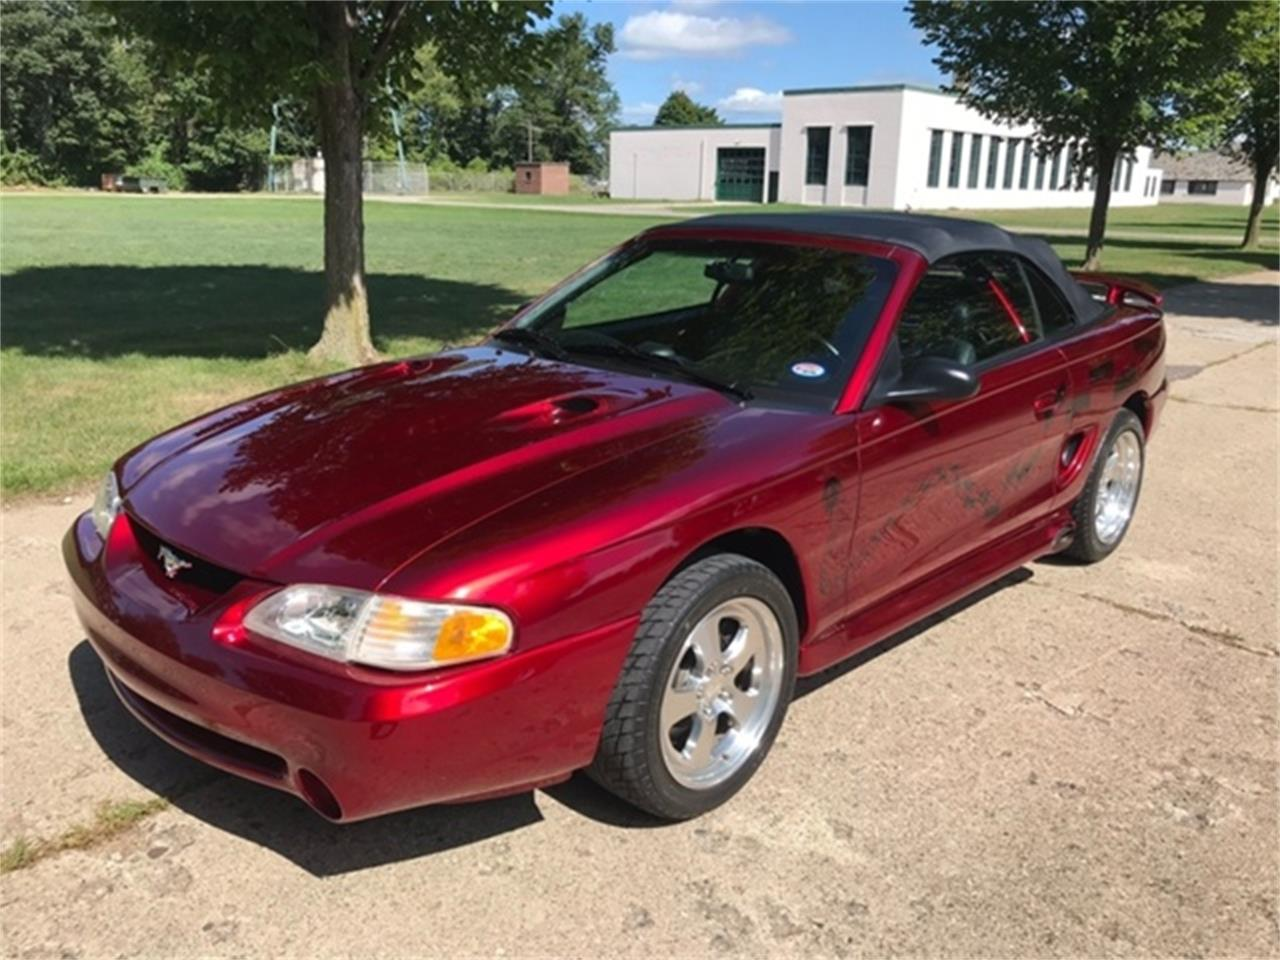 199 6 Ford Mustang